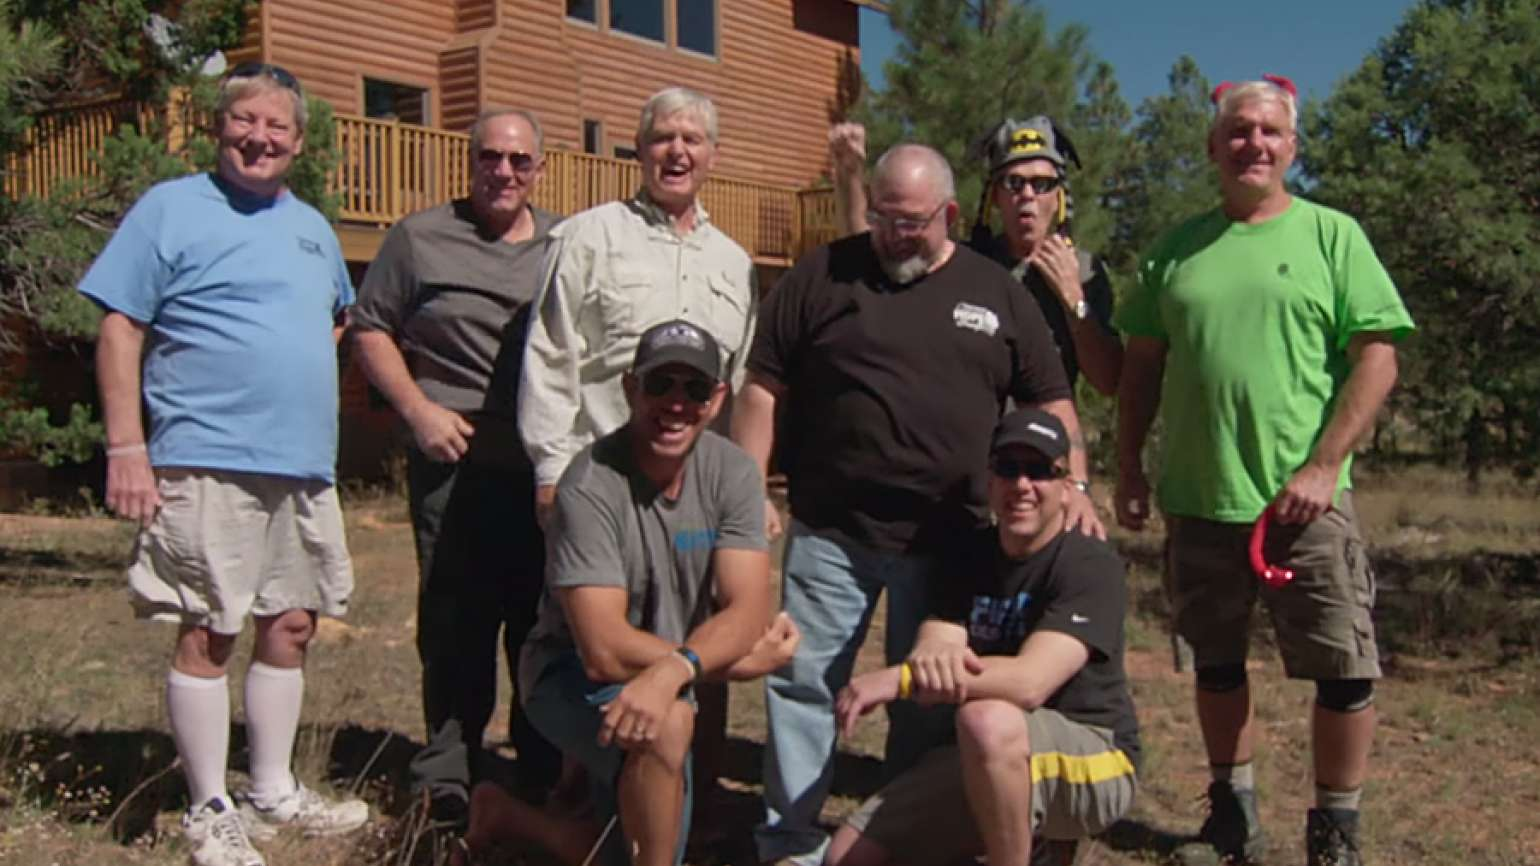 """Seven cancer survivors learned the power of saying """"yes"""" while rock climbing together for the first time in Arizona."""